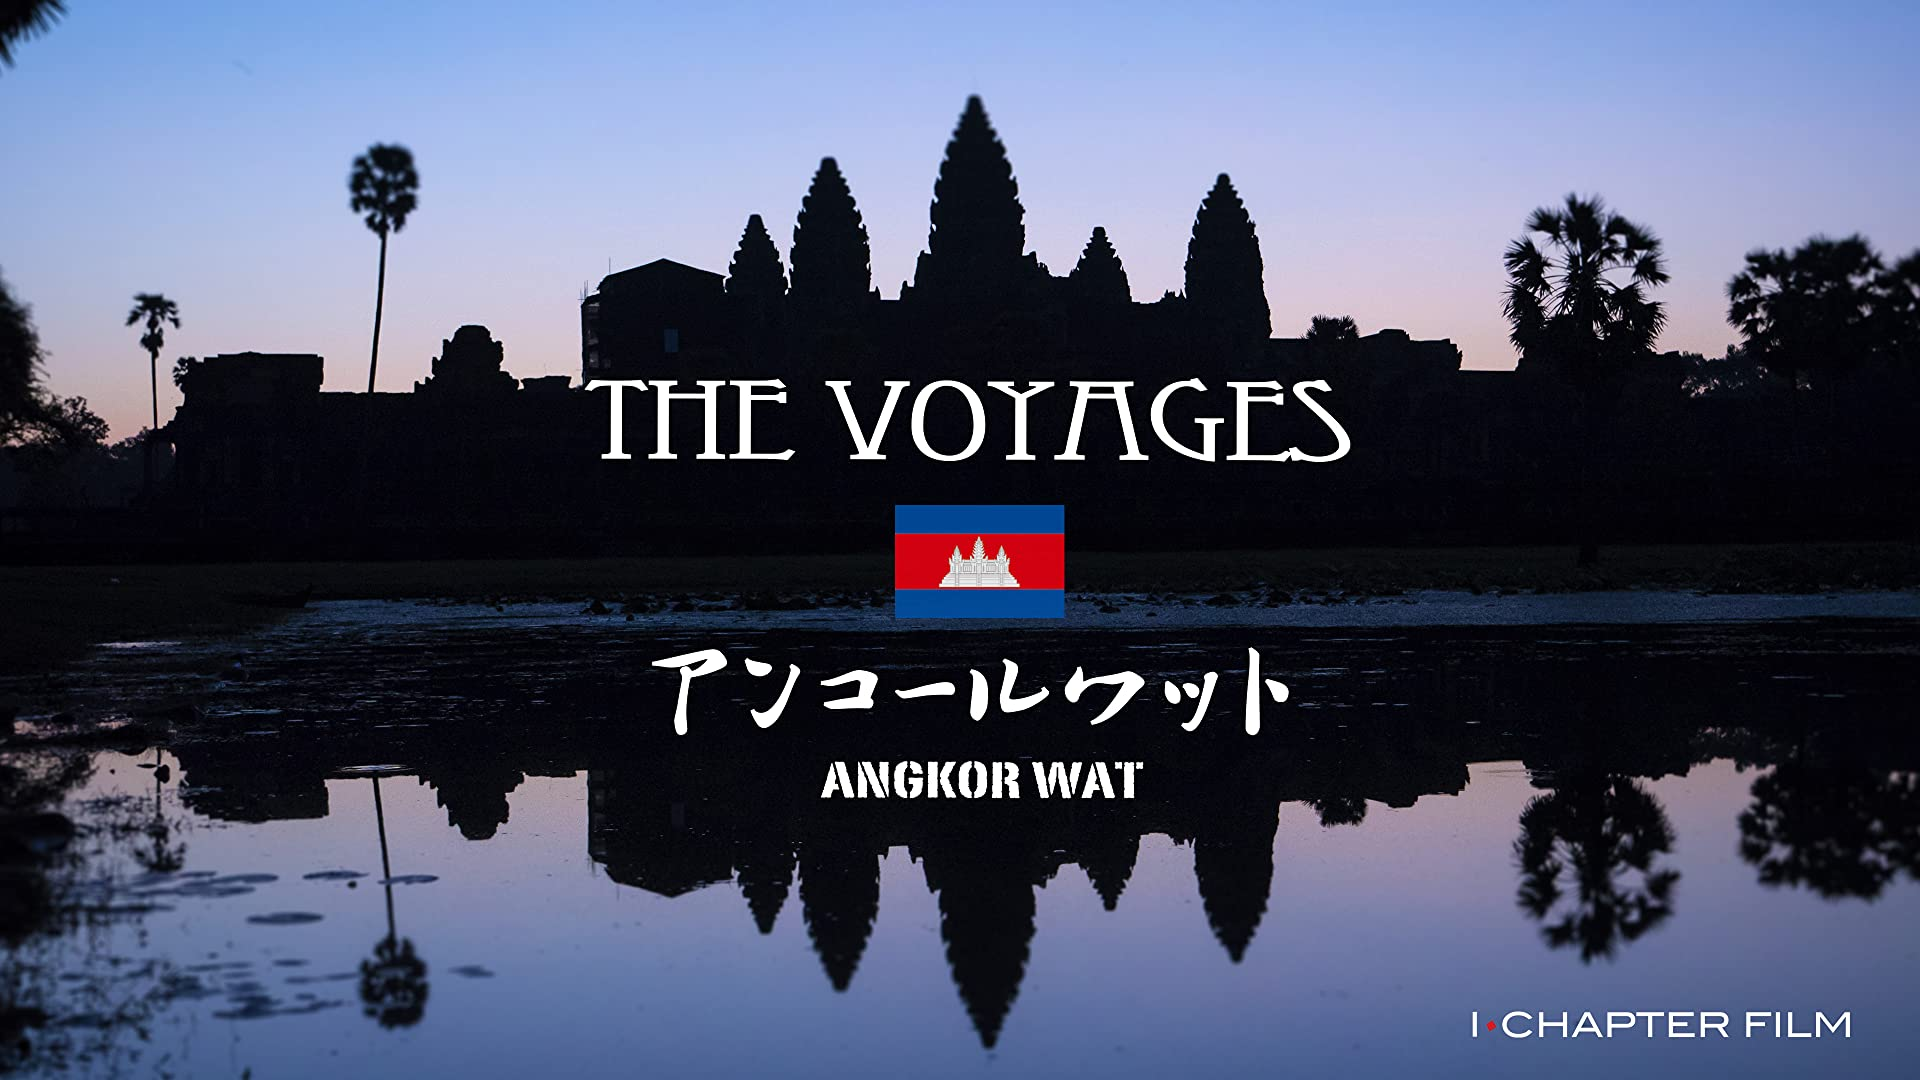 THE_VOYAGES_アンコールワット